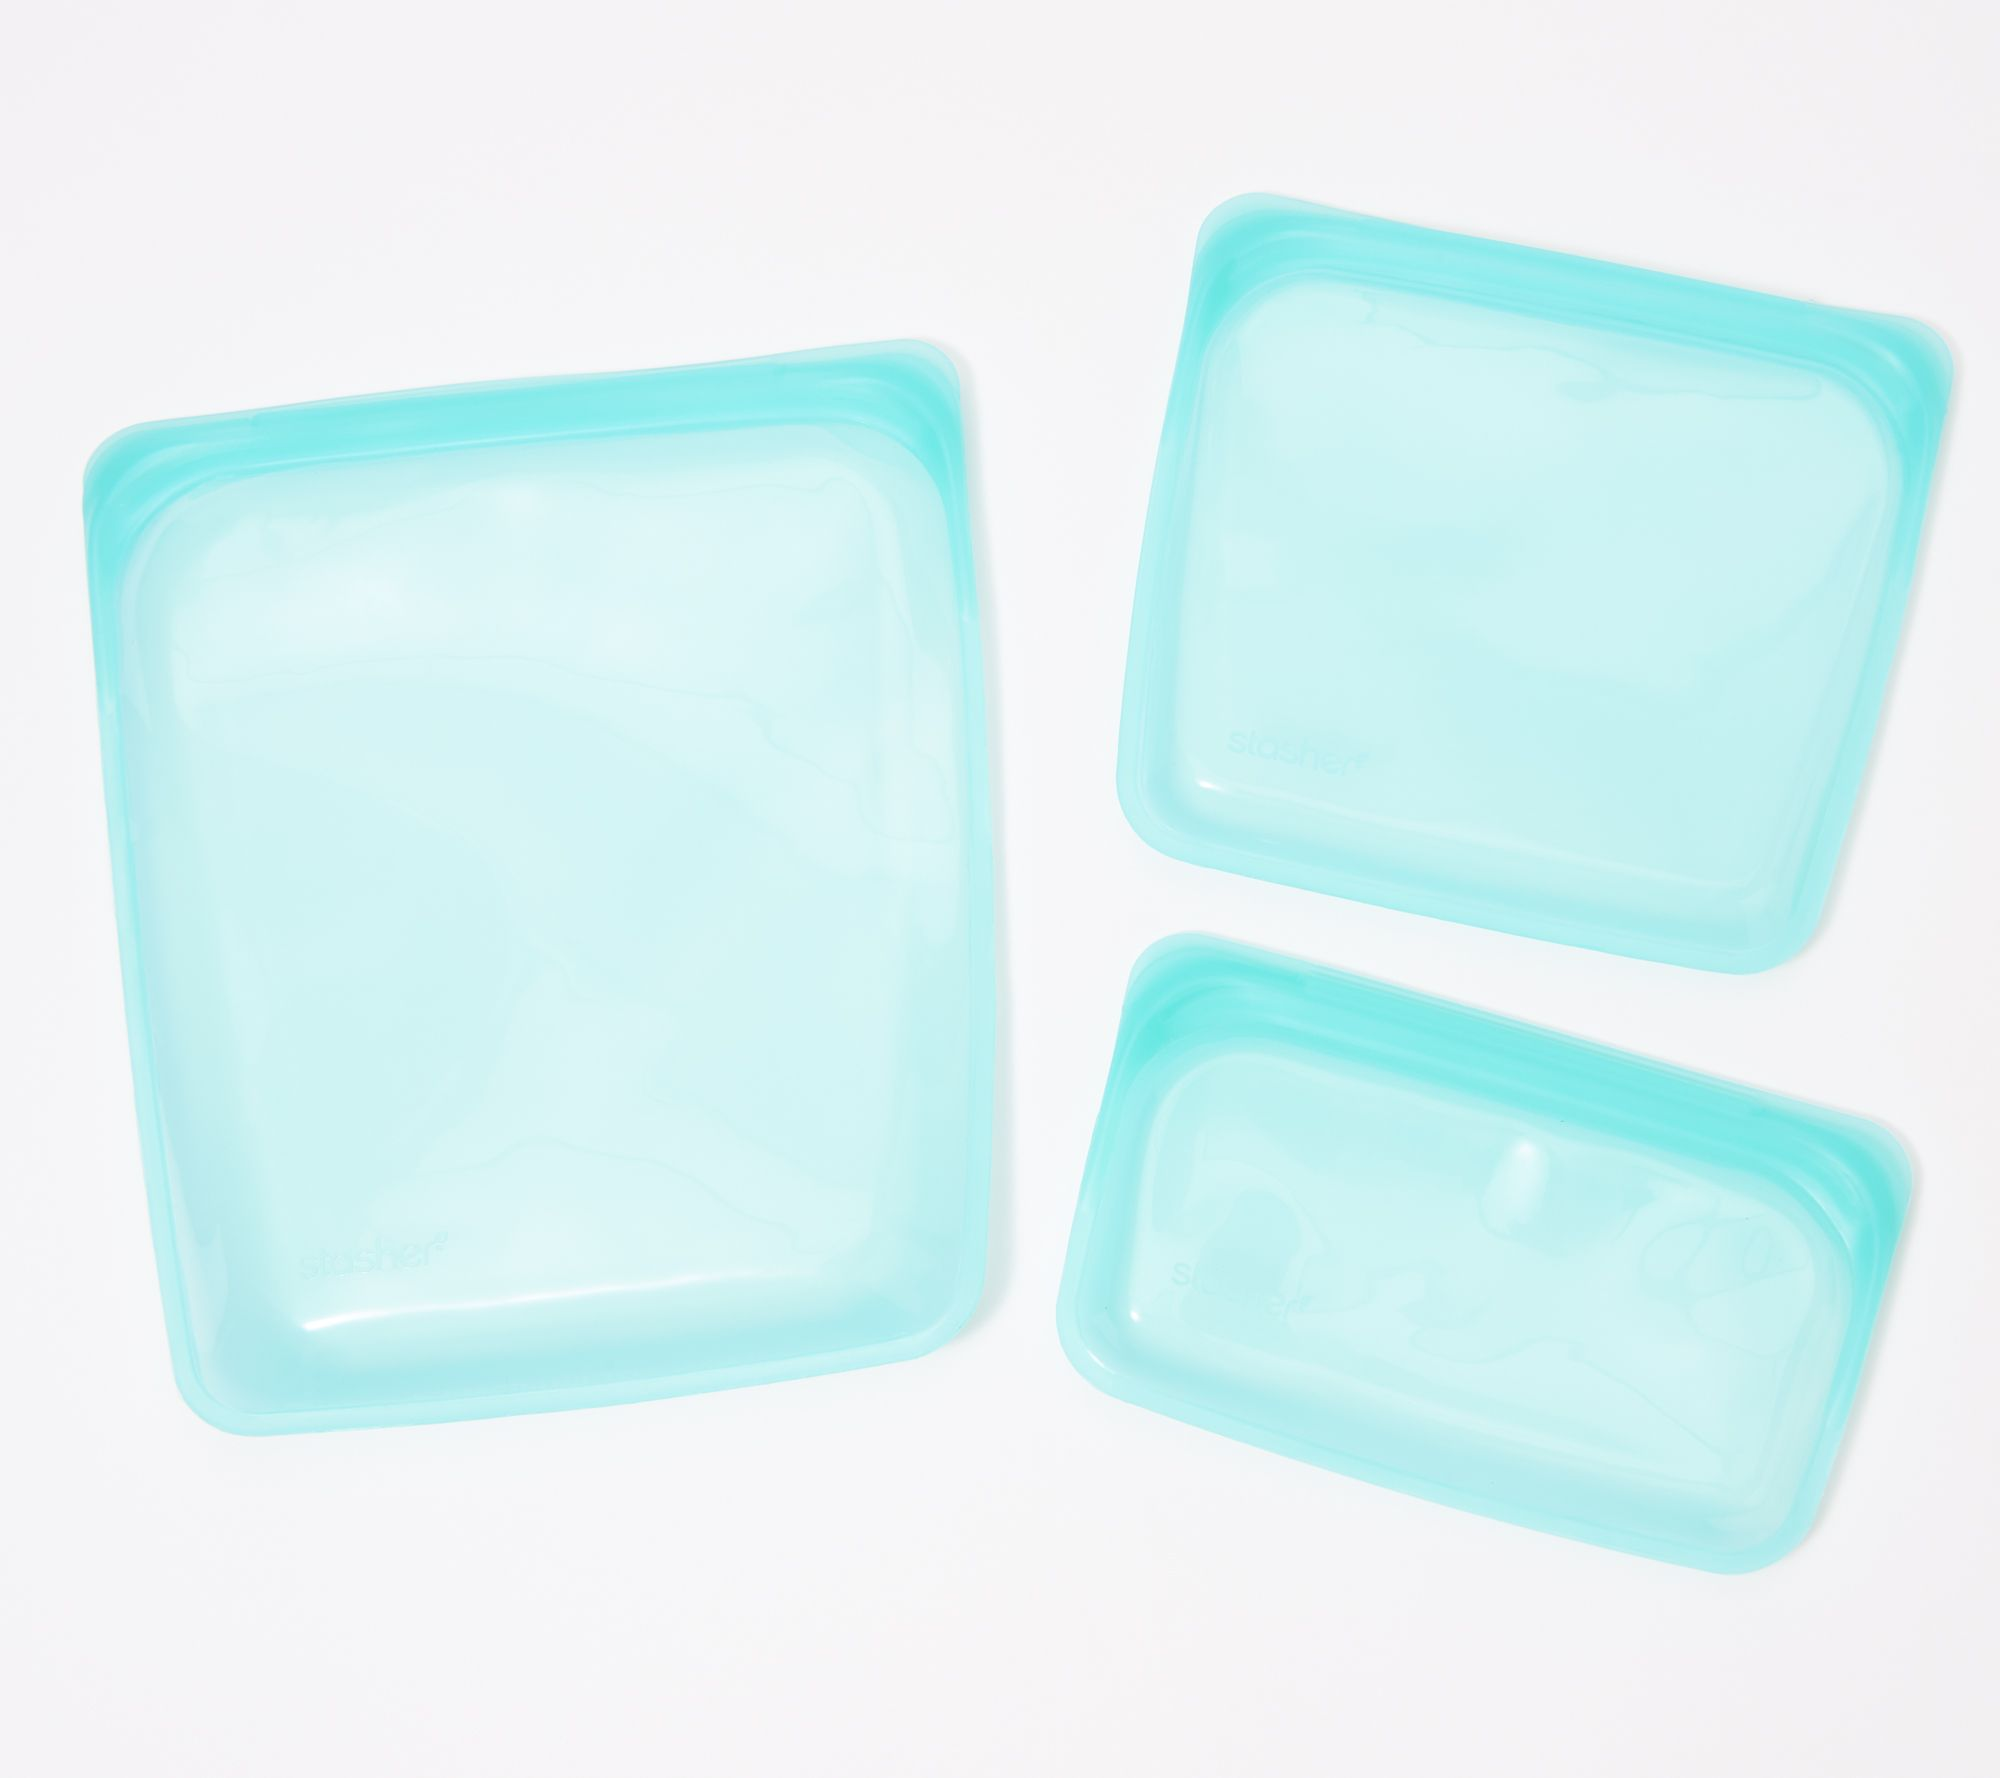 Stasher Set Of 3 Core Reusable Silicone Storage Bags Qvc